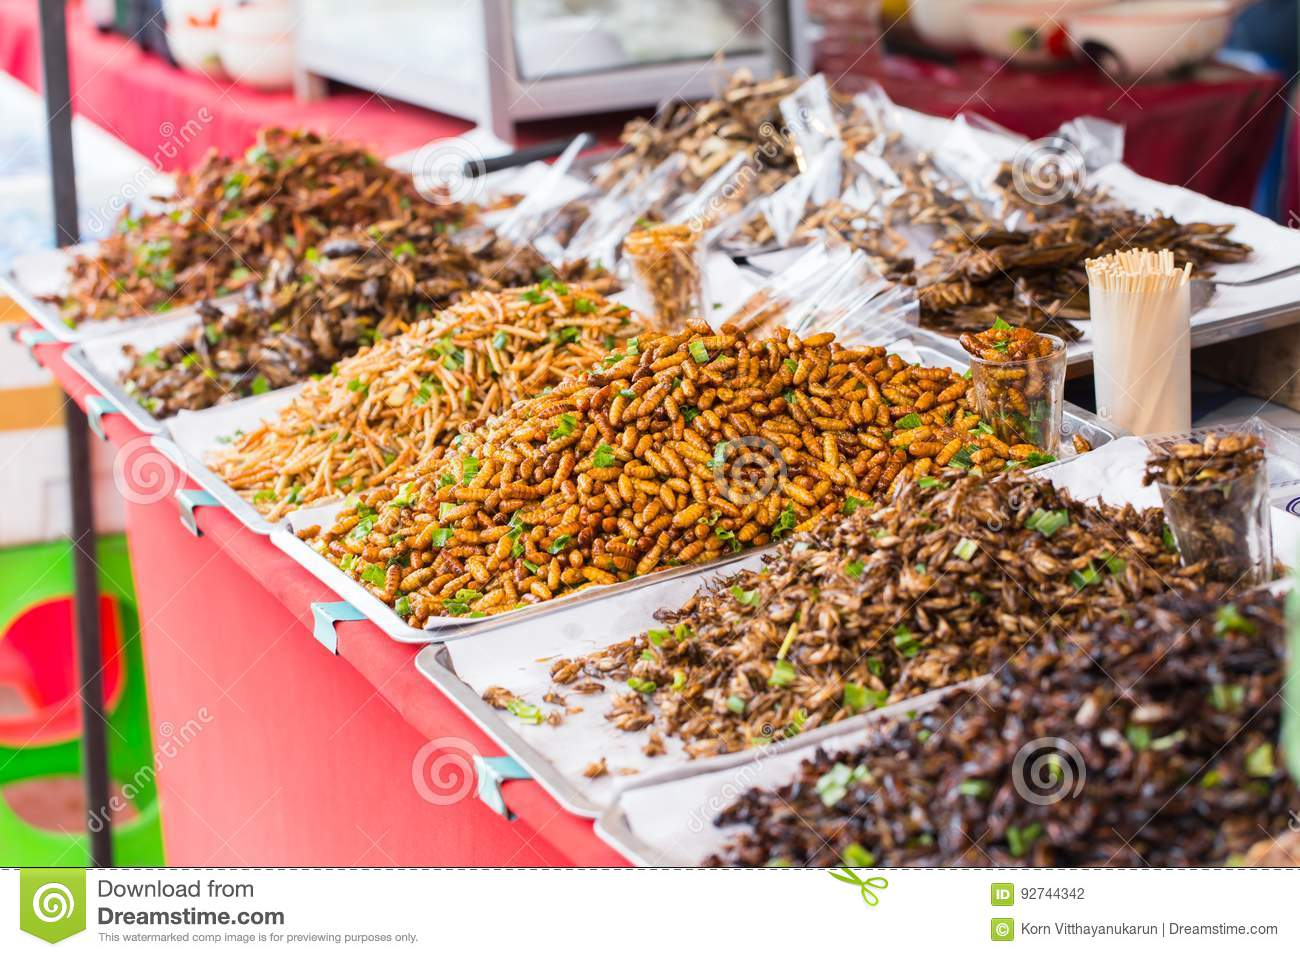 """Ulična hrana"" - STREET FOOD Thailand-bug-fried-sale-business-asian-insect-snack-food-bug-fried-sale-business-asian-insect-snack-food-high-protein-nature-92744342"